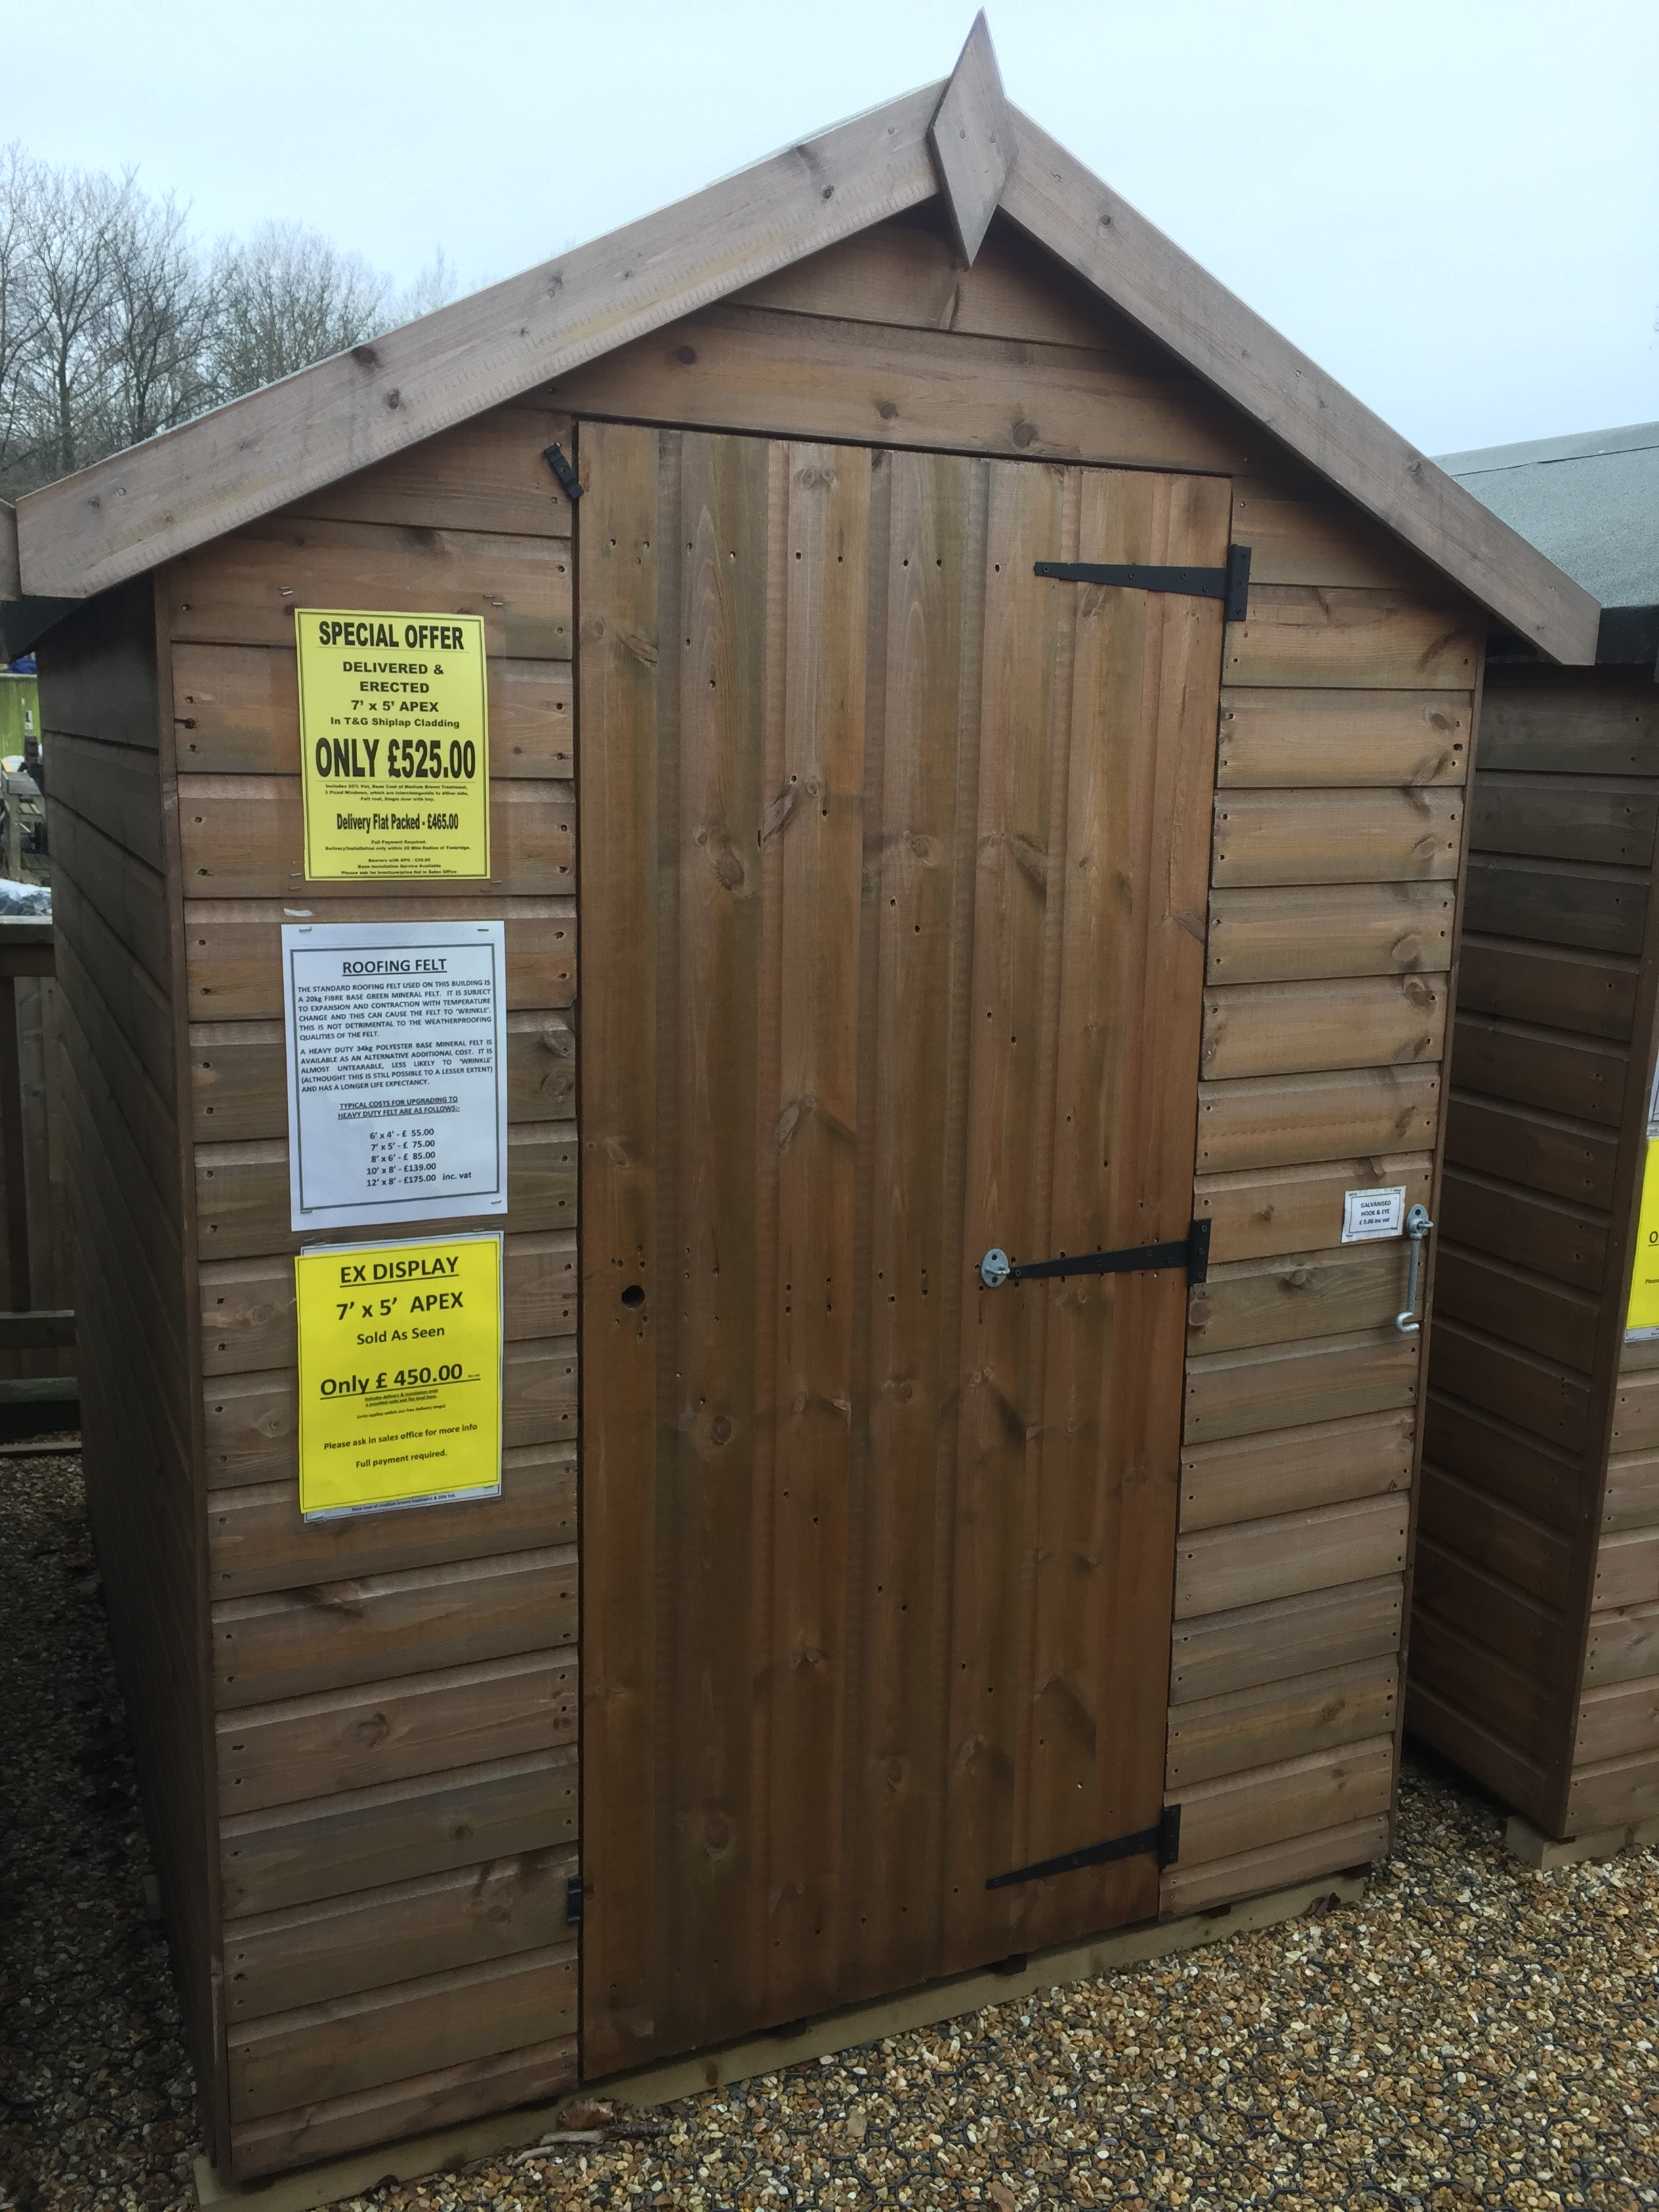 "<p id=""boldtitle"">Ex Display</p>6 x 4 Apex - £ 385.00 delivered and erected.<br/>7 x 5 Apex - £ 450.00 delivered and erected."